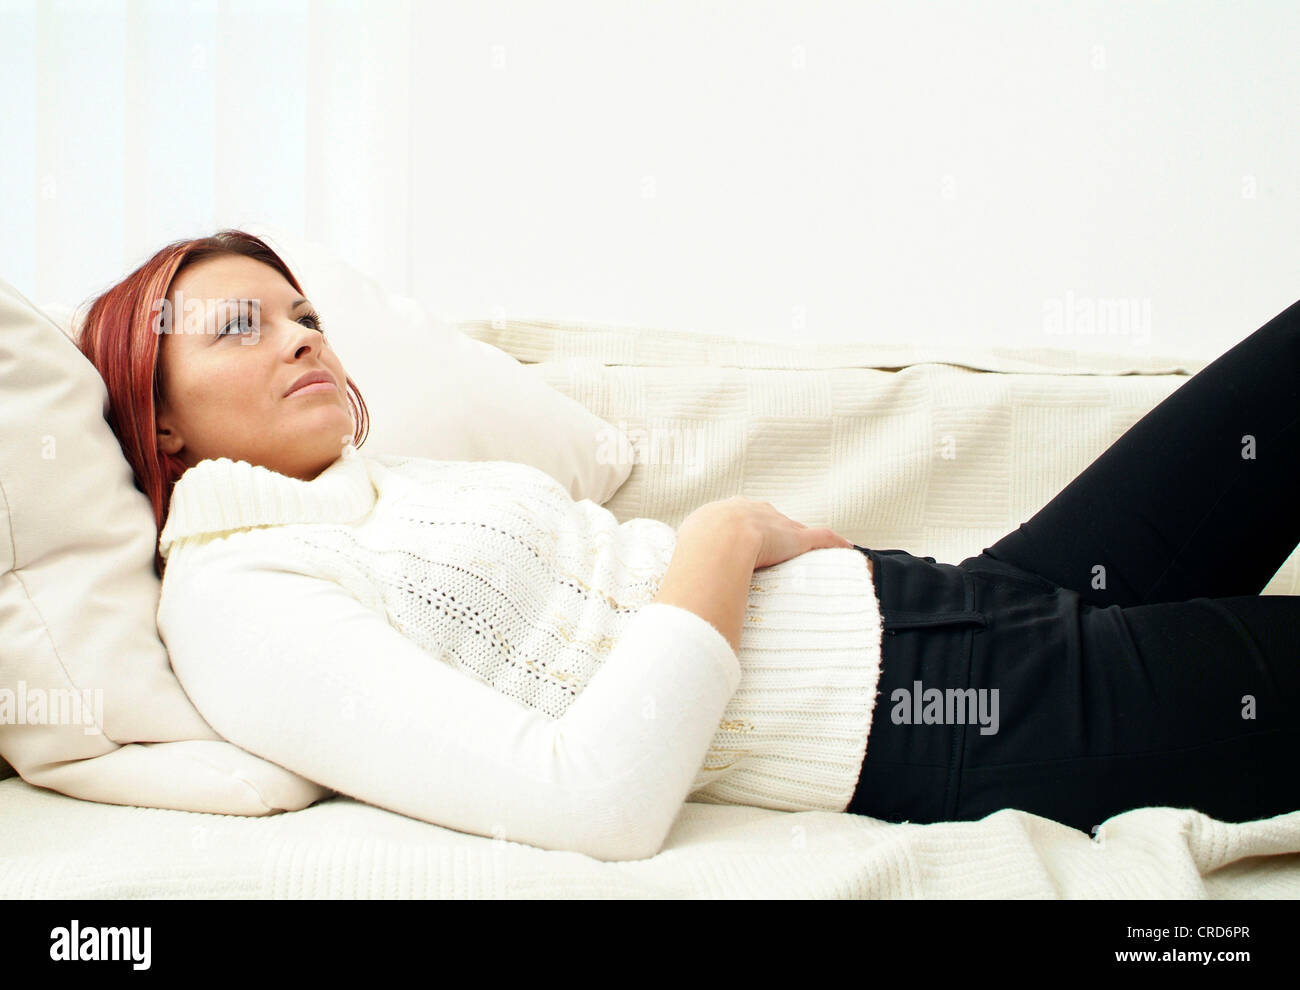 thoughtful young woman lying on a couch - Stock Image